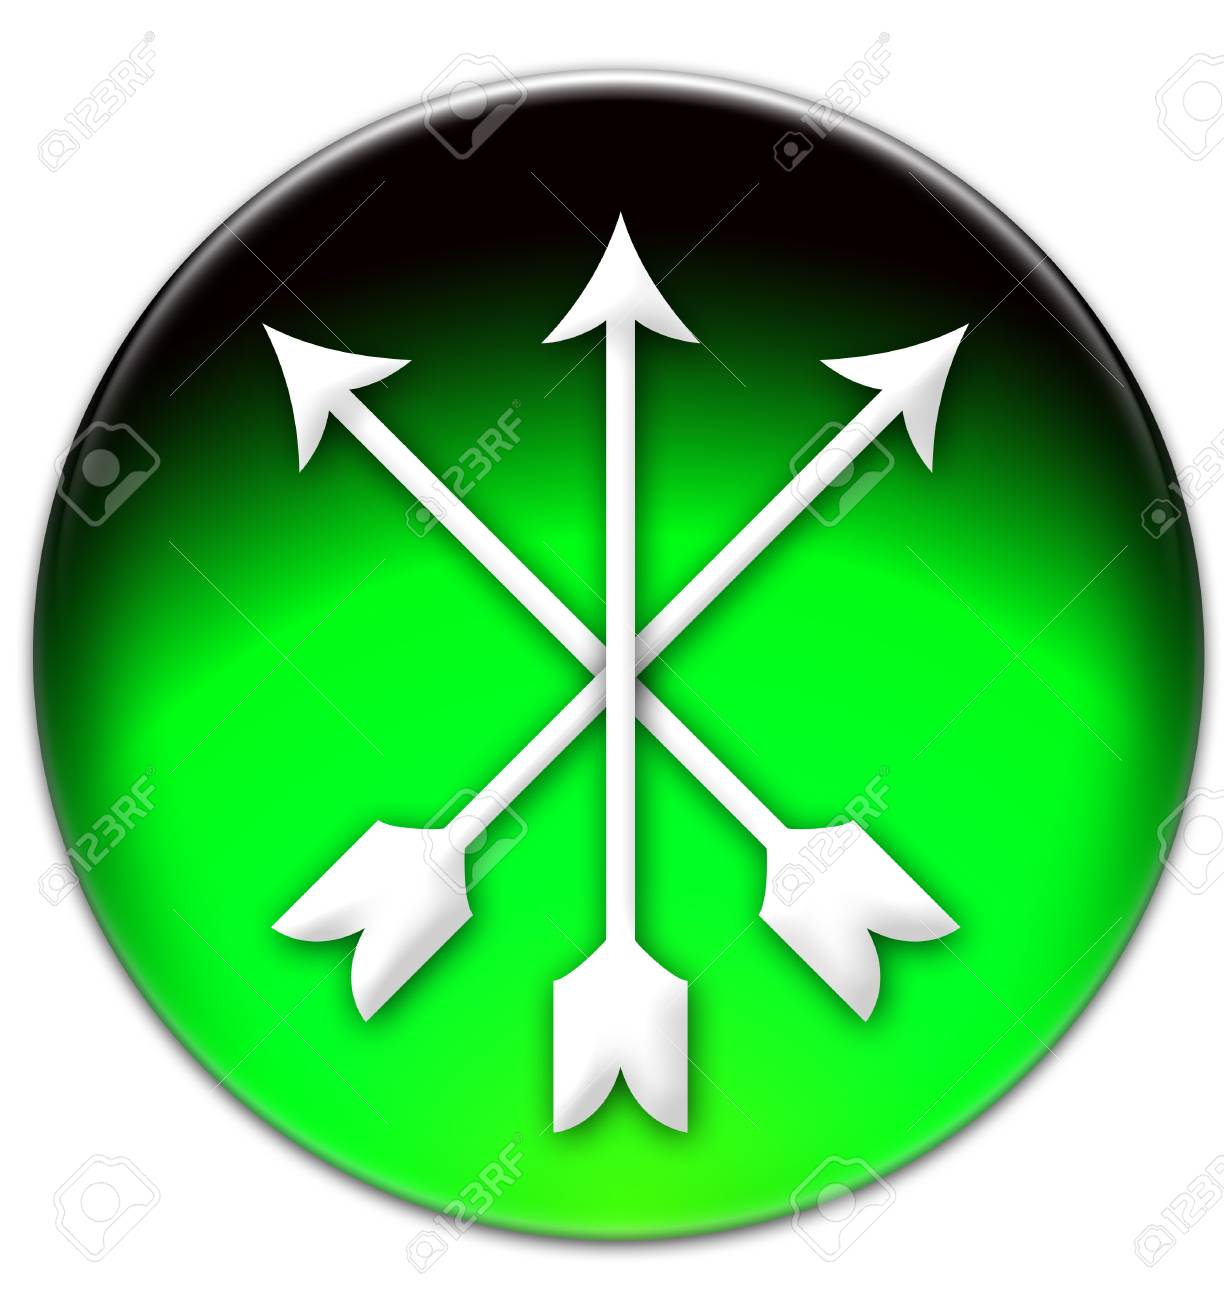 Three White Crossed Arrows On A Green Button Isolated Over White